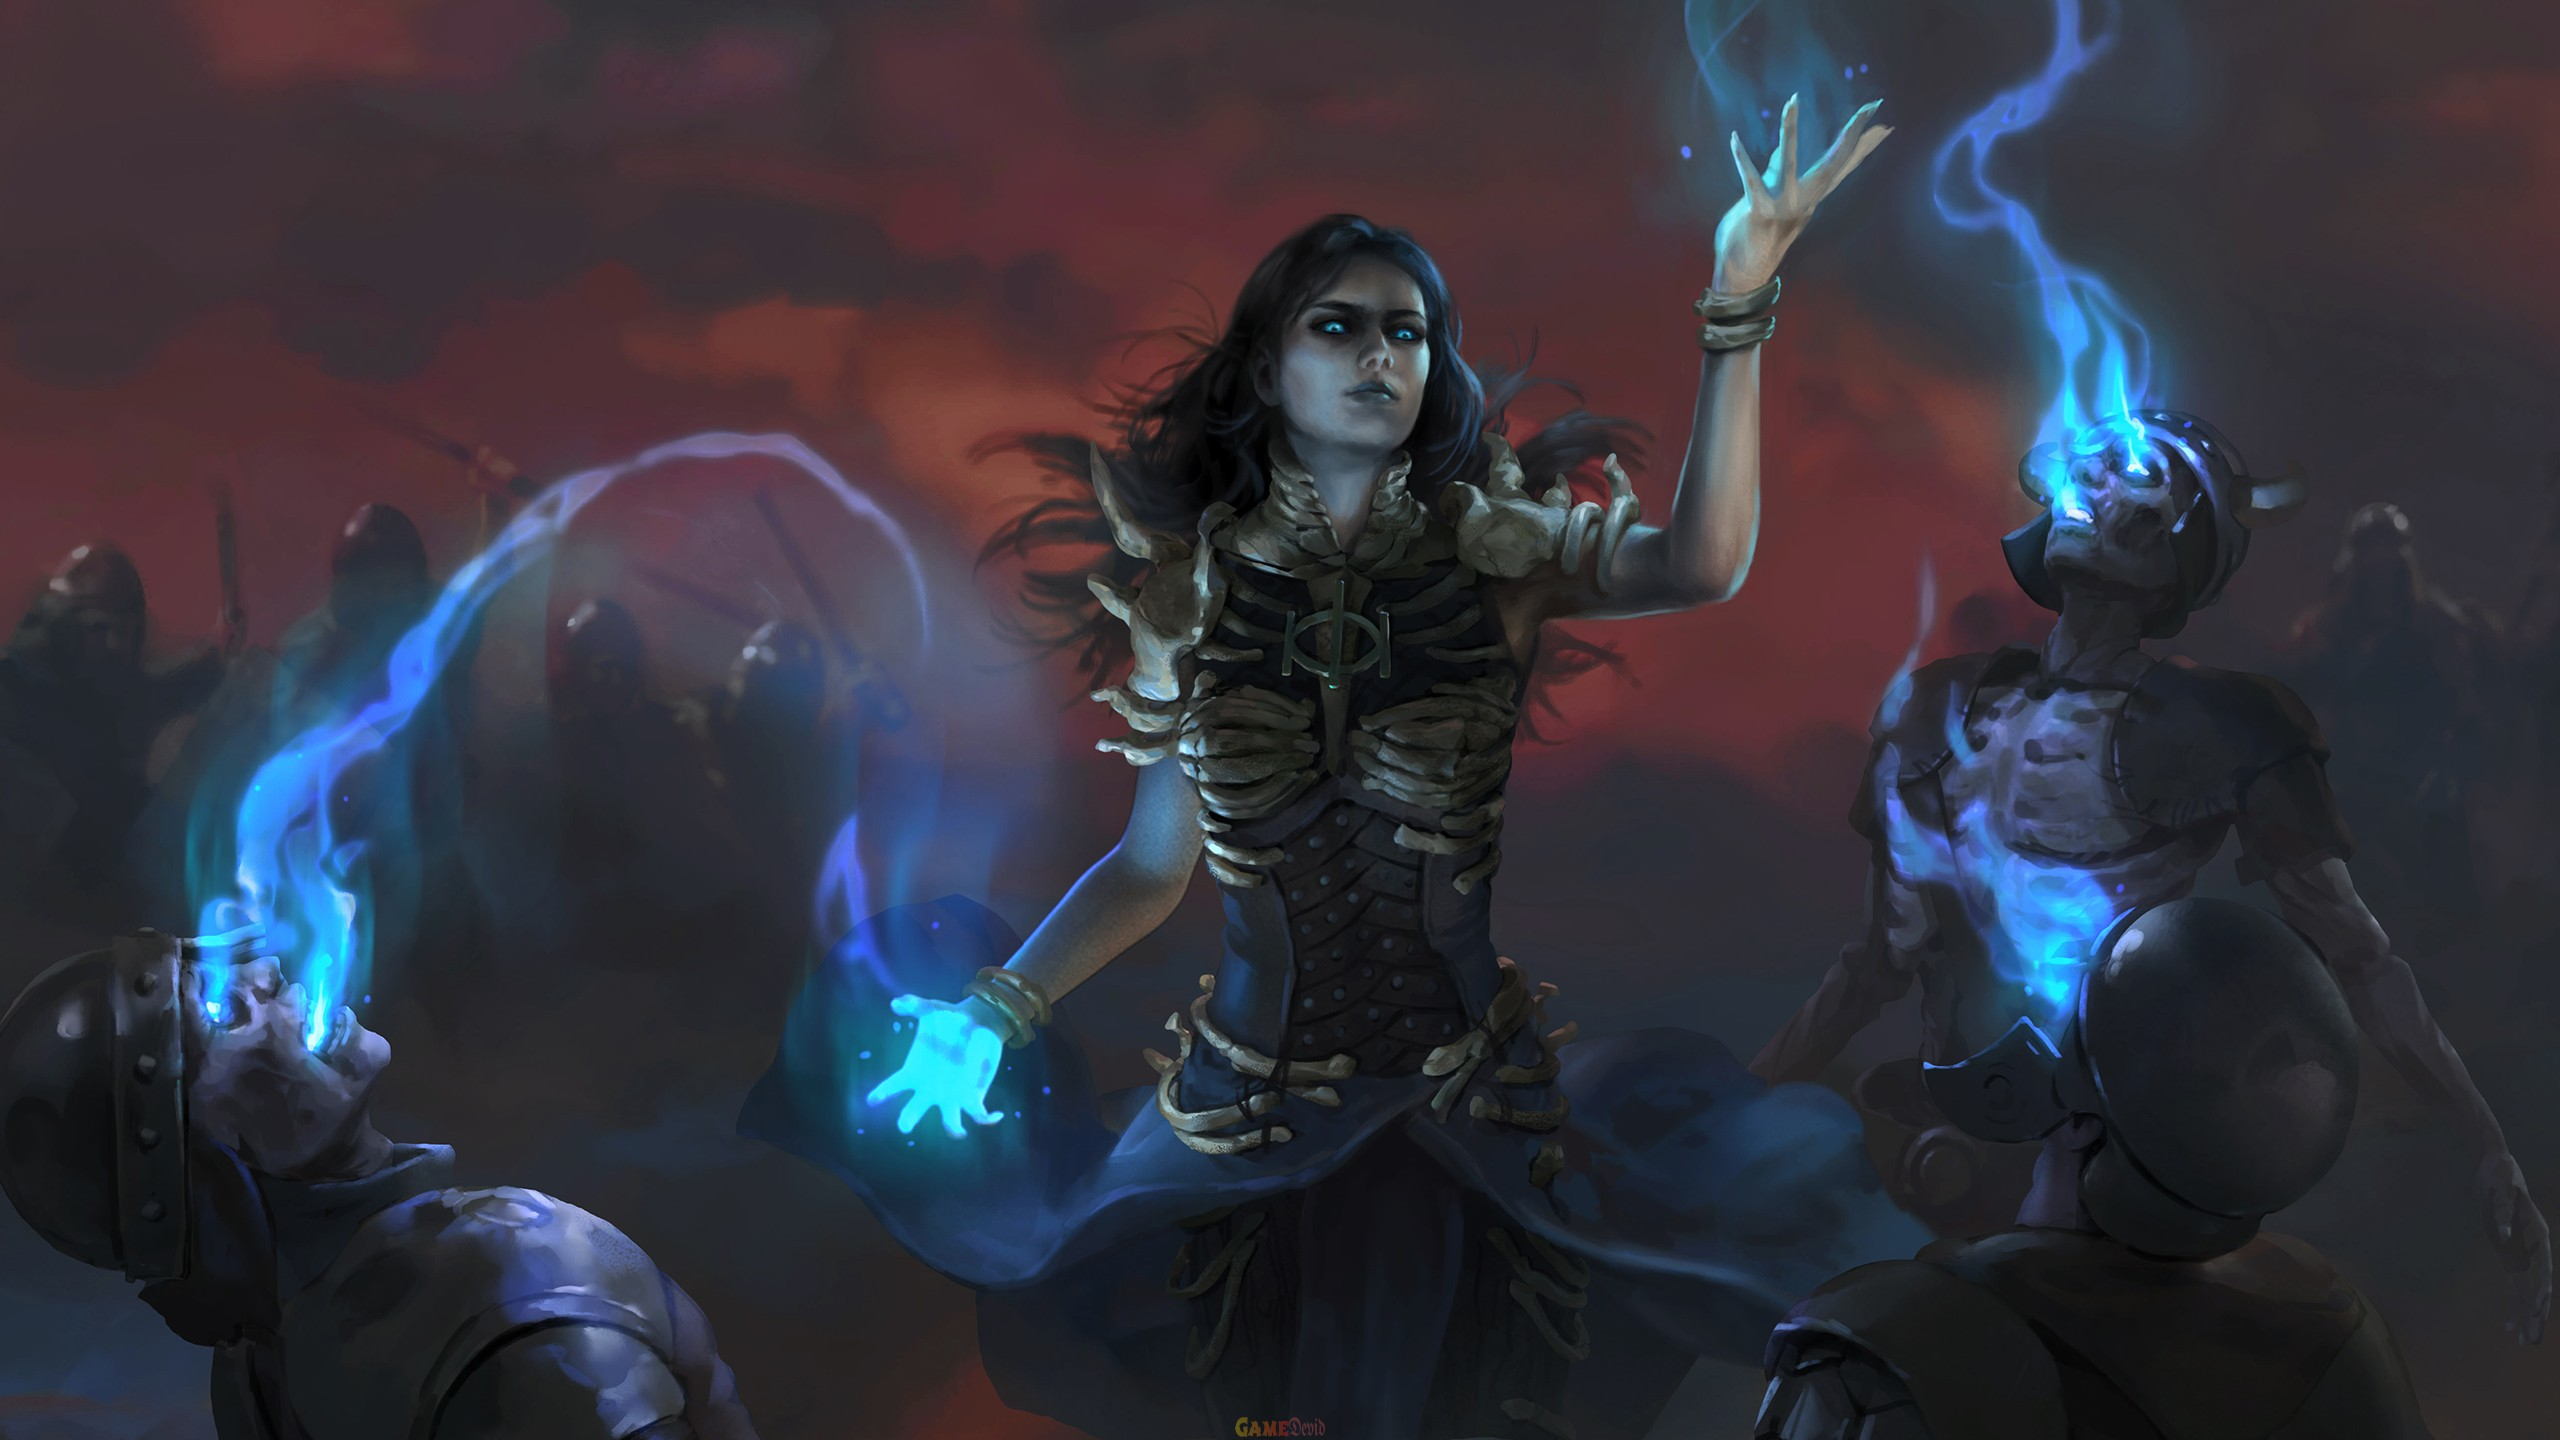 Path Of Exile Part 1 Download PC Game Full Cracked Version